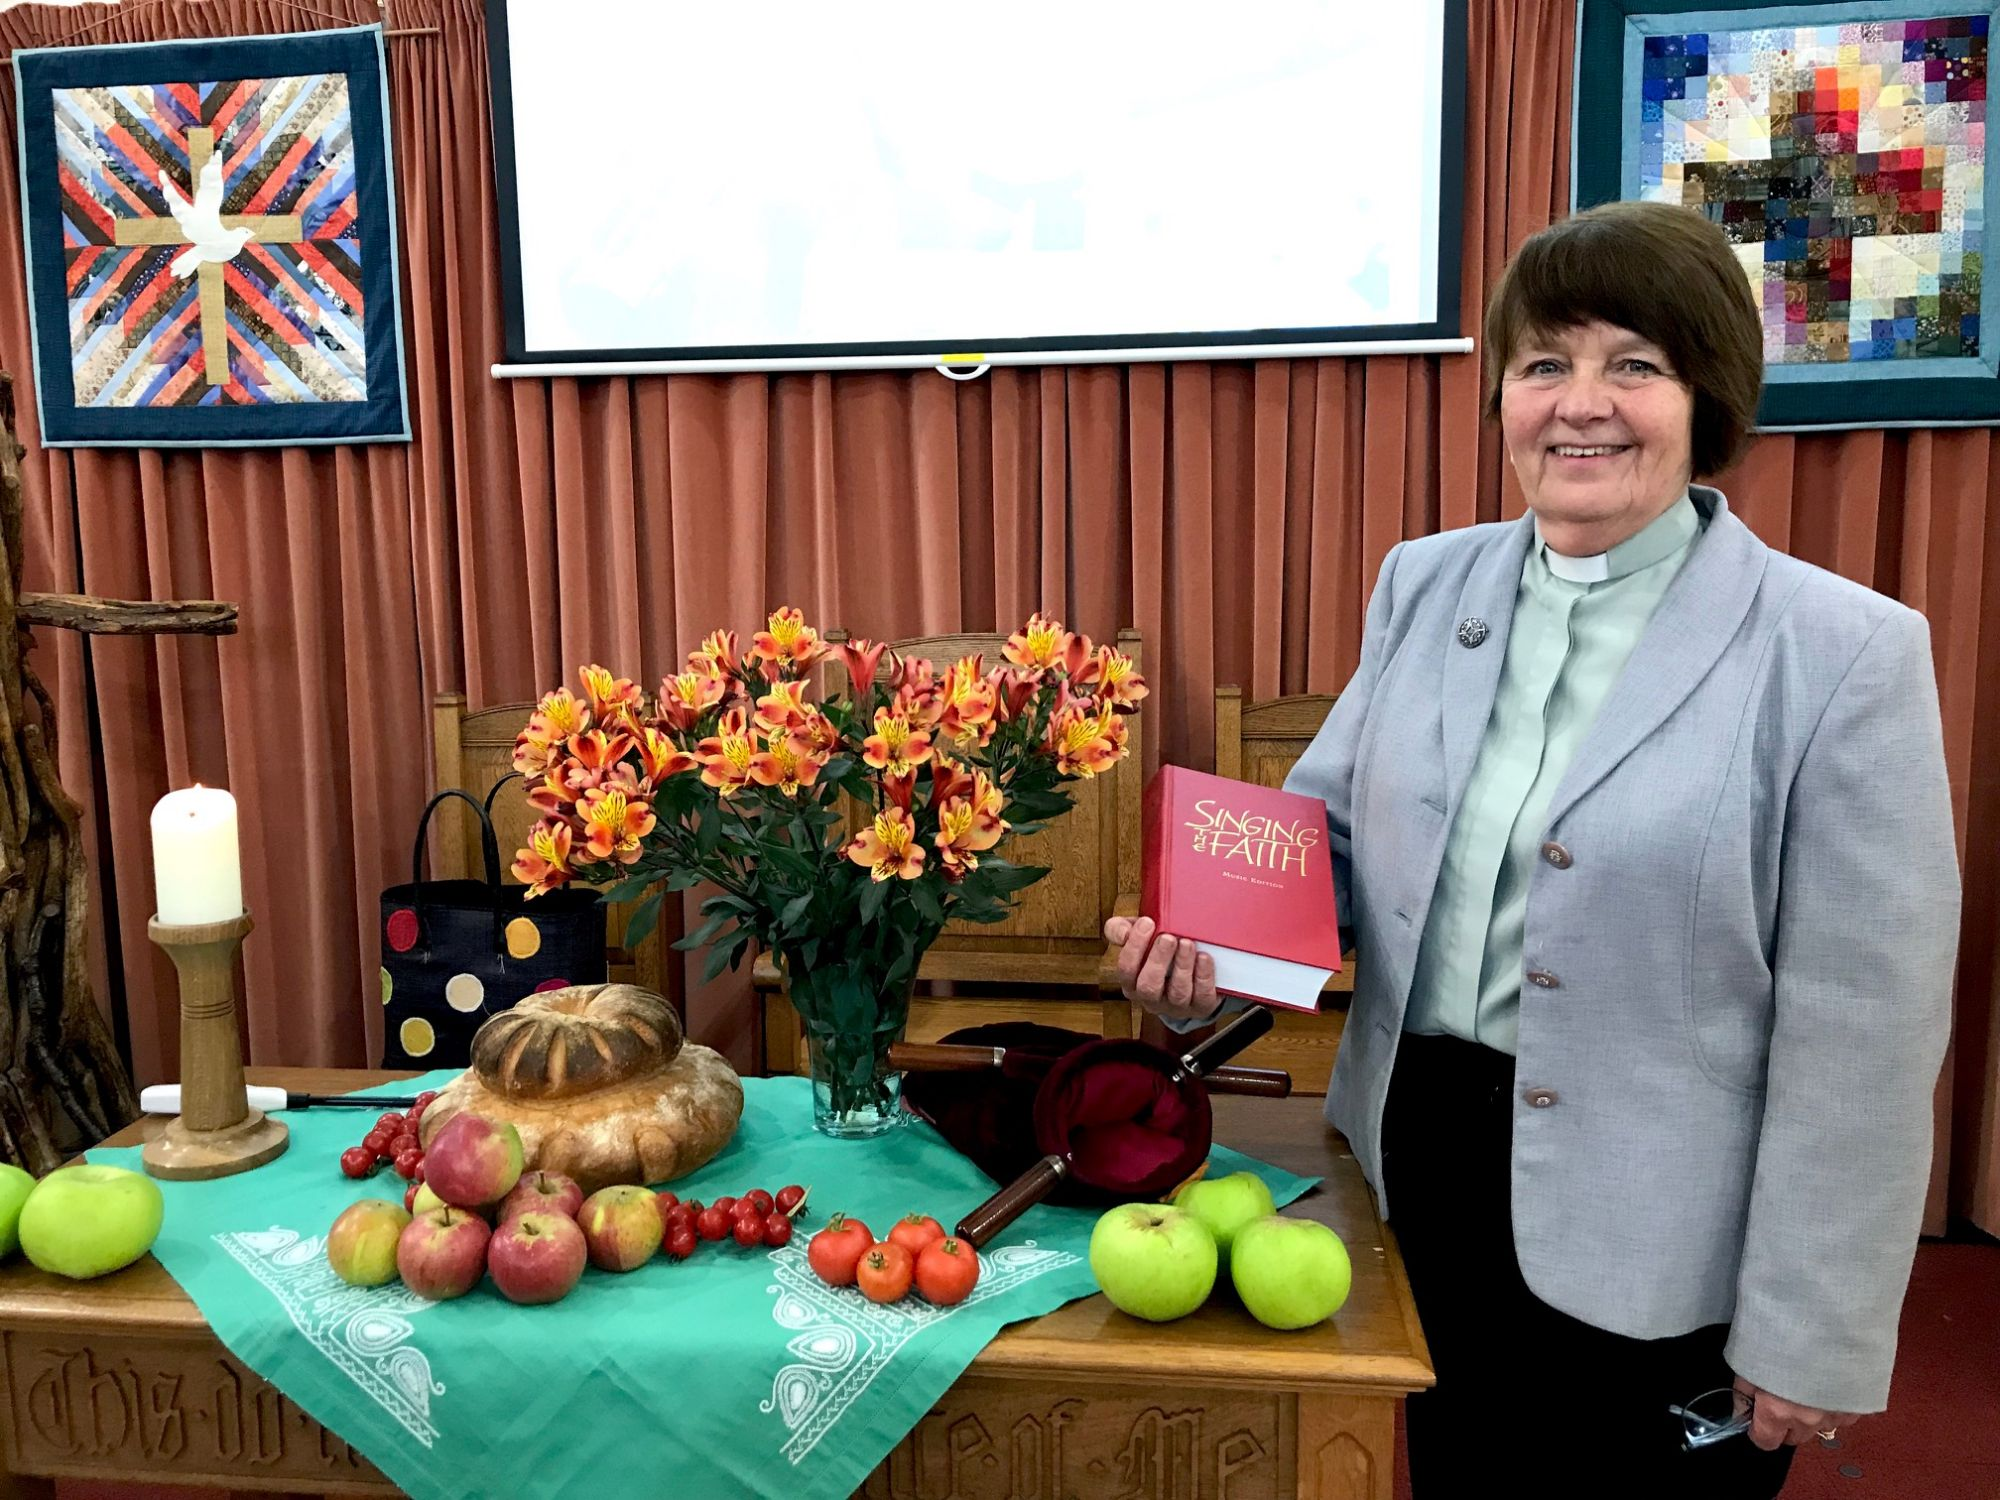 Revd Maree Farrimond with the New Hymn Book at the Harvest Table